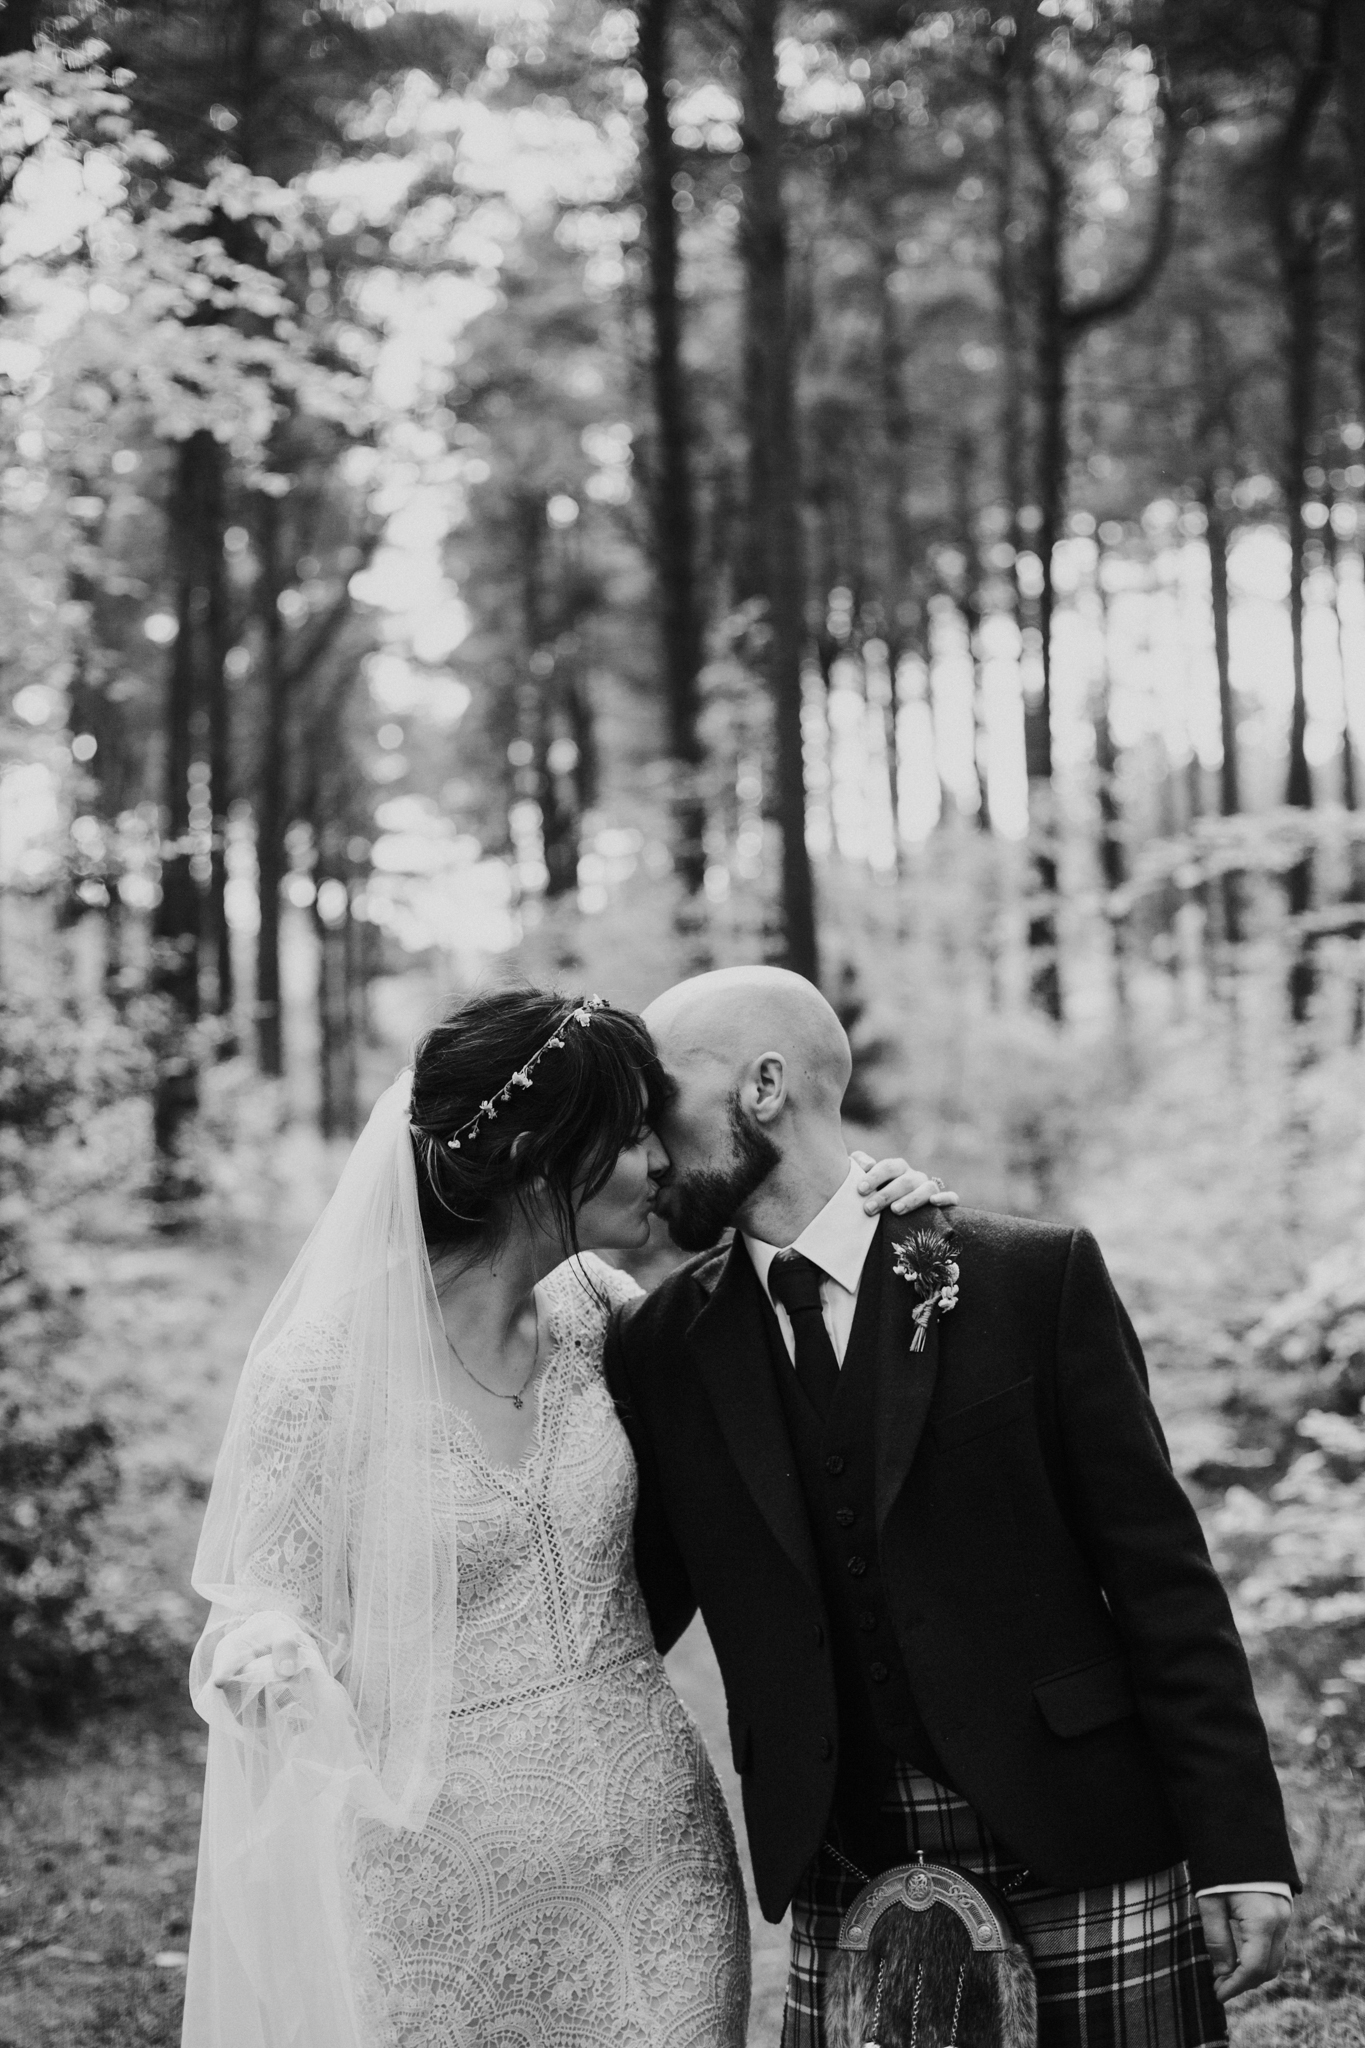 A sweet kiss while walking in the wild forest